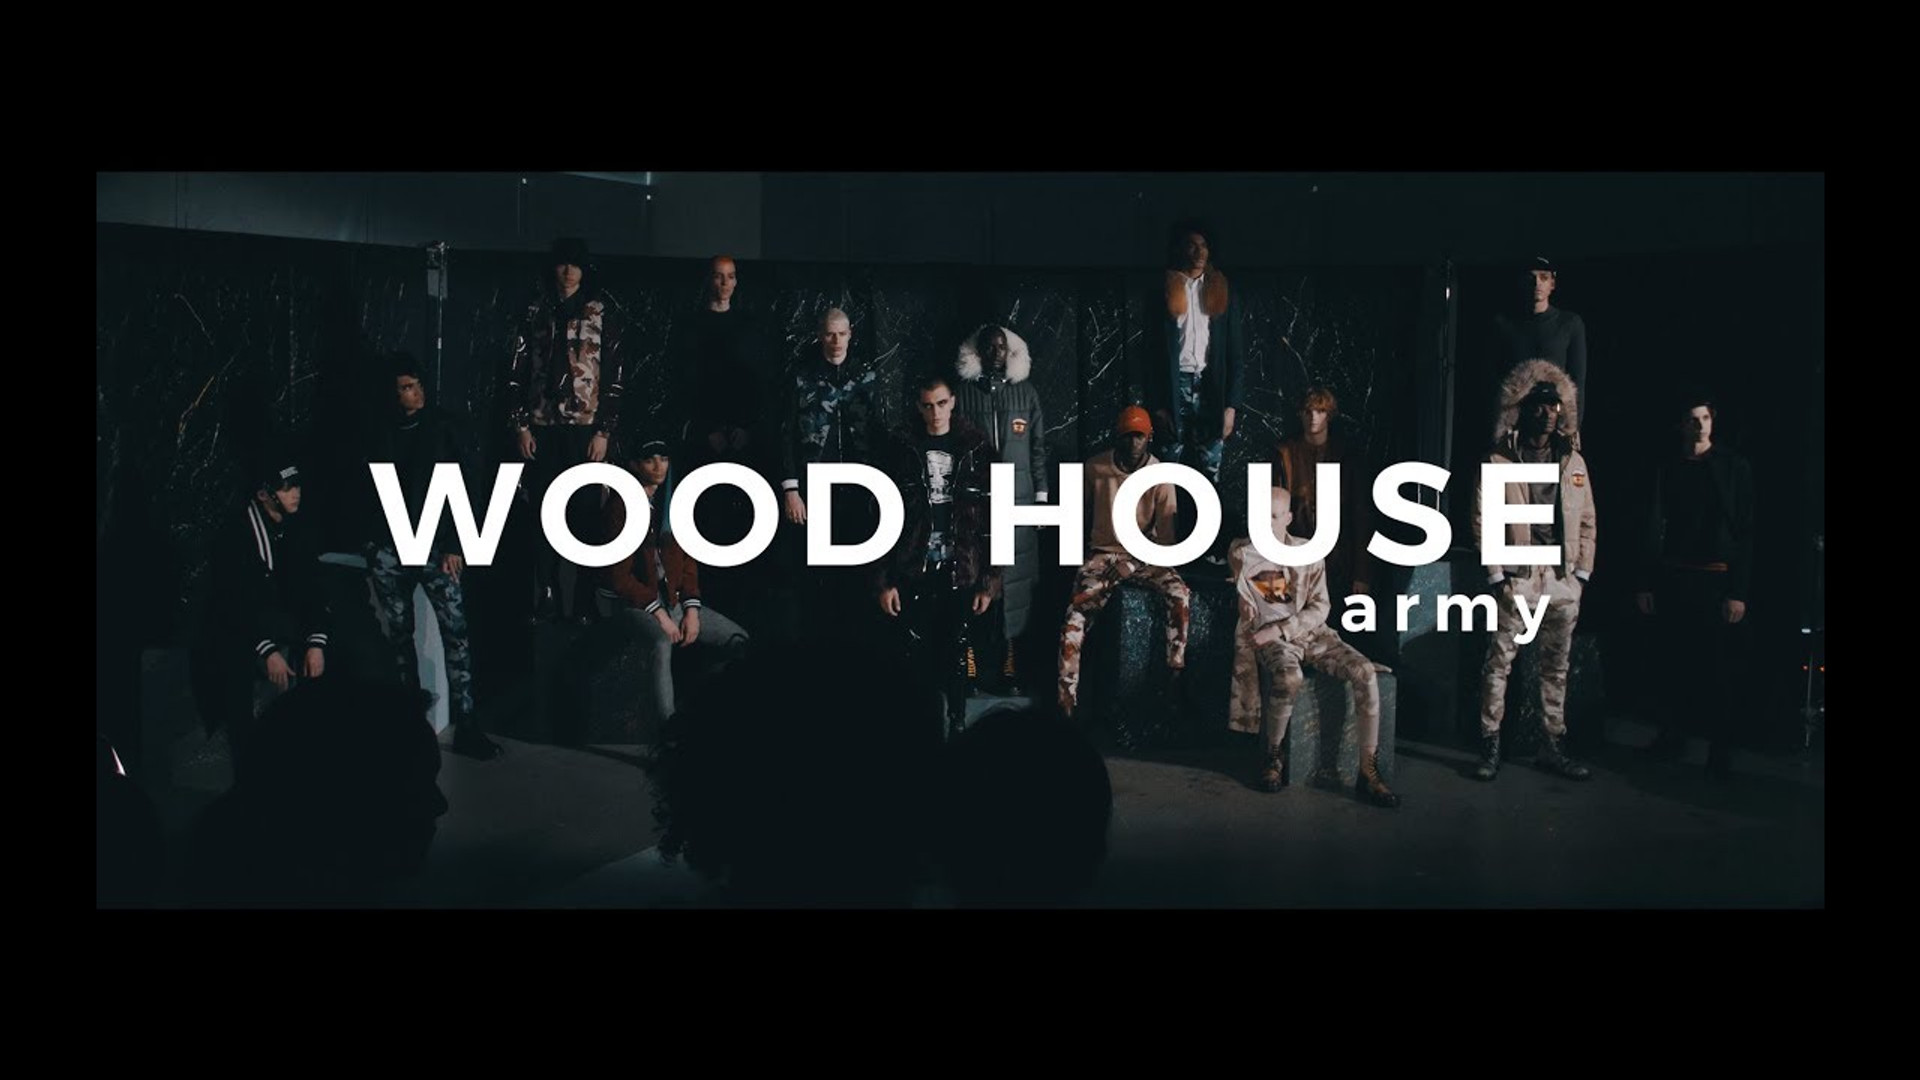 WOODHOUSE ARMY FW'18 | GH5 + Sigma 18-35mm + Zhiyun Crane 2